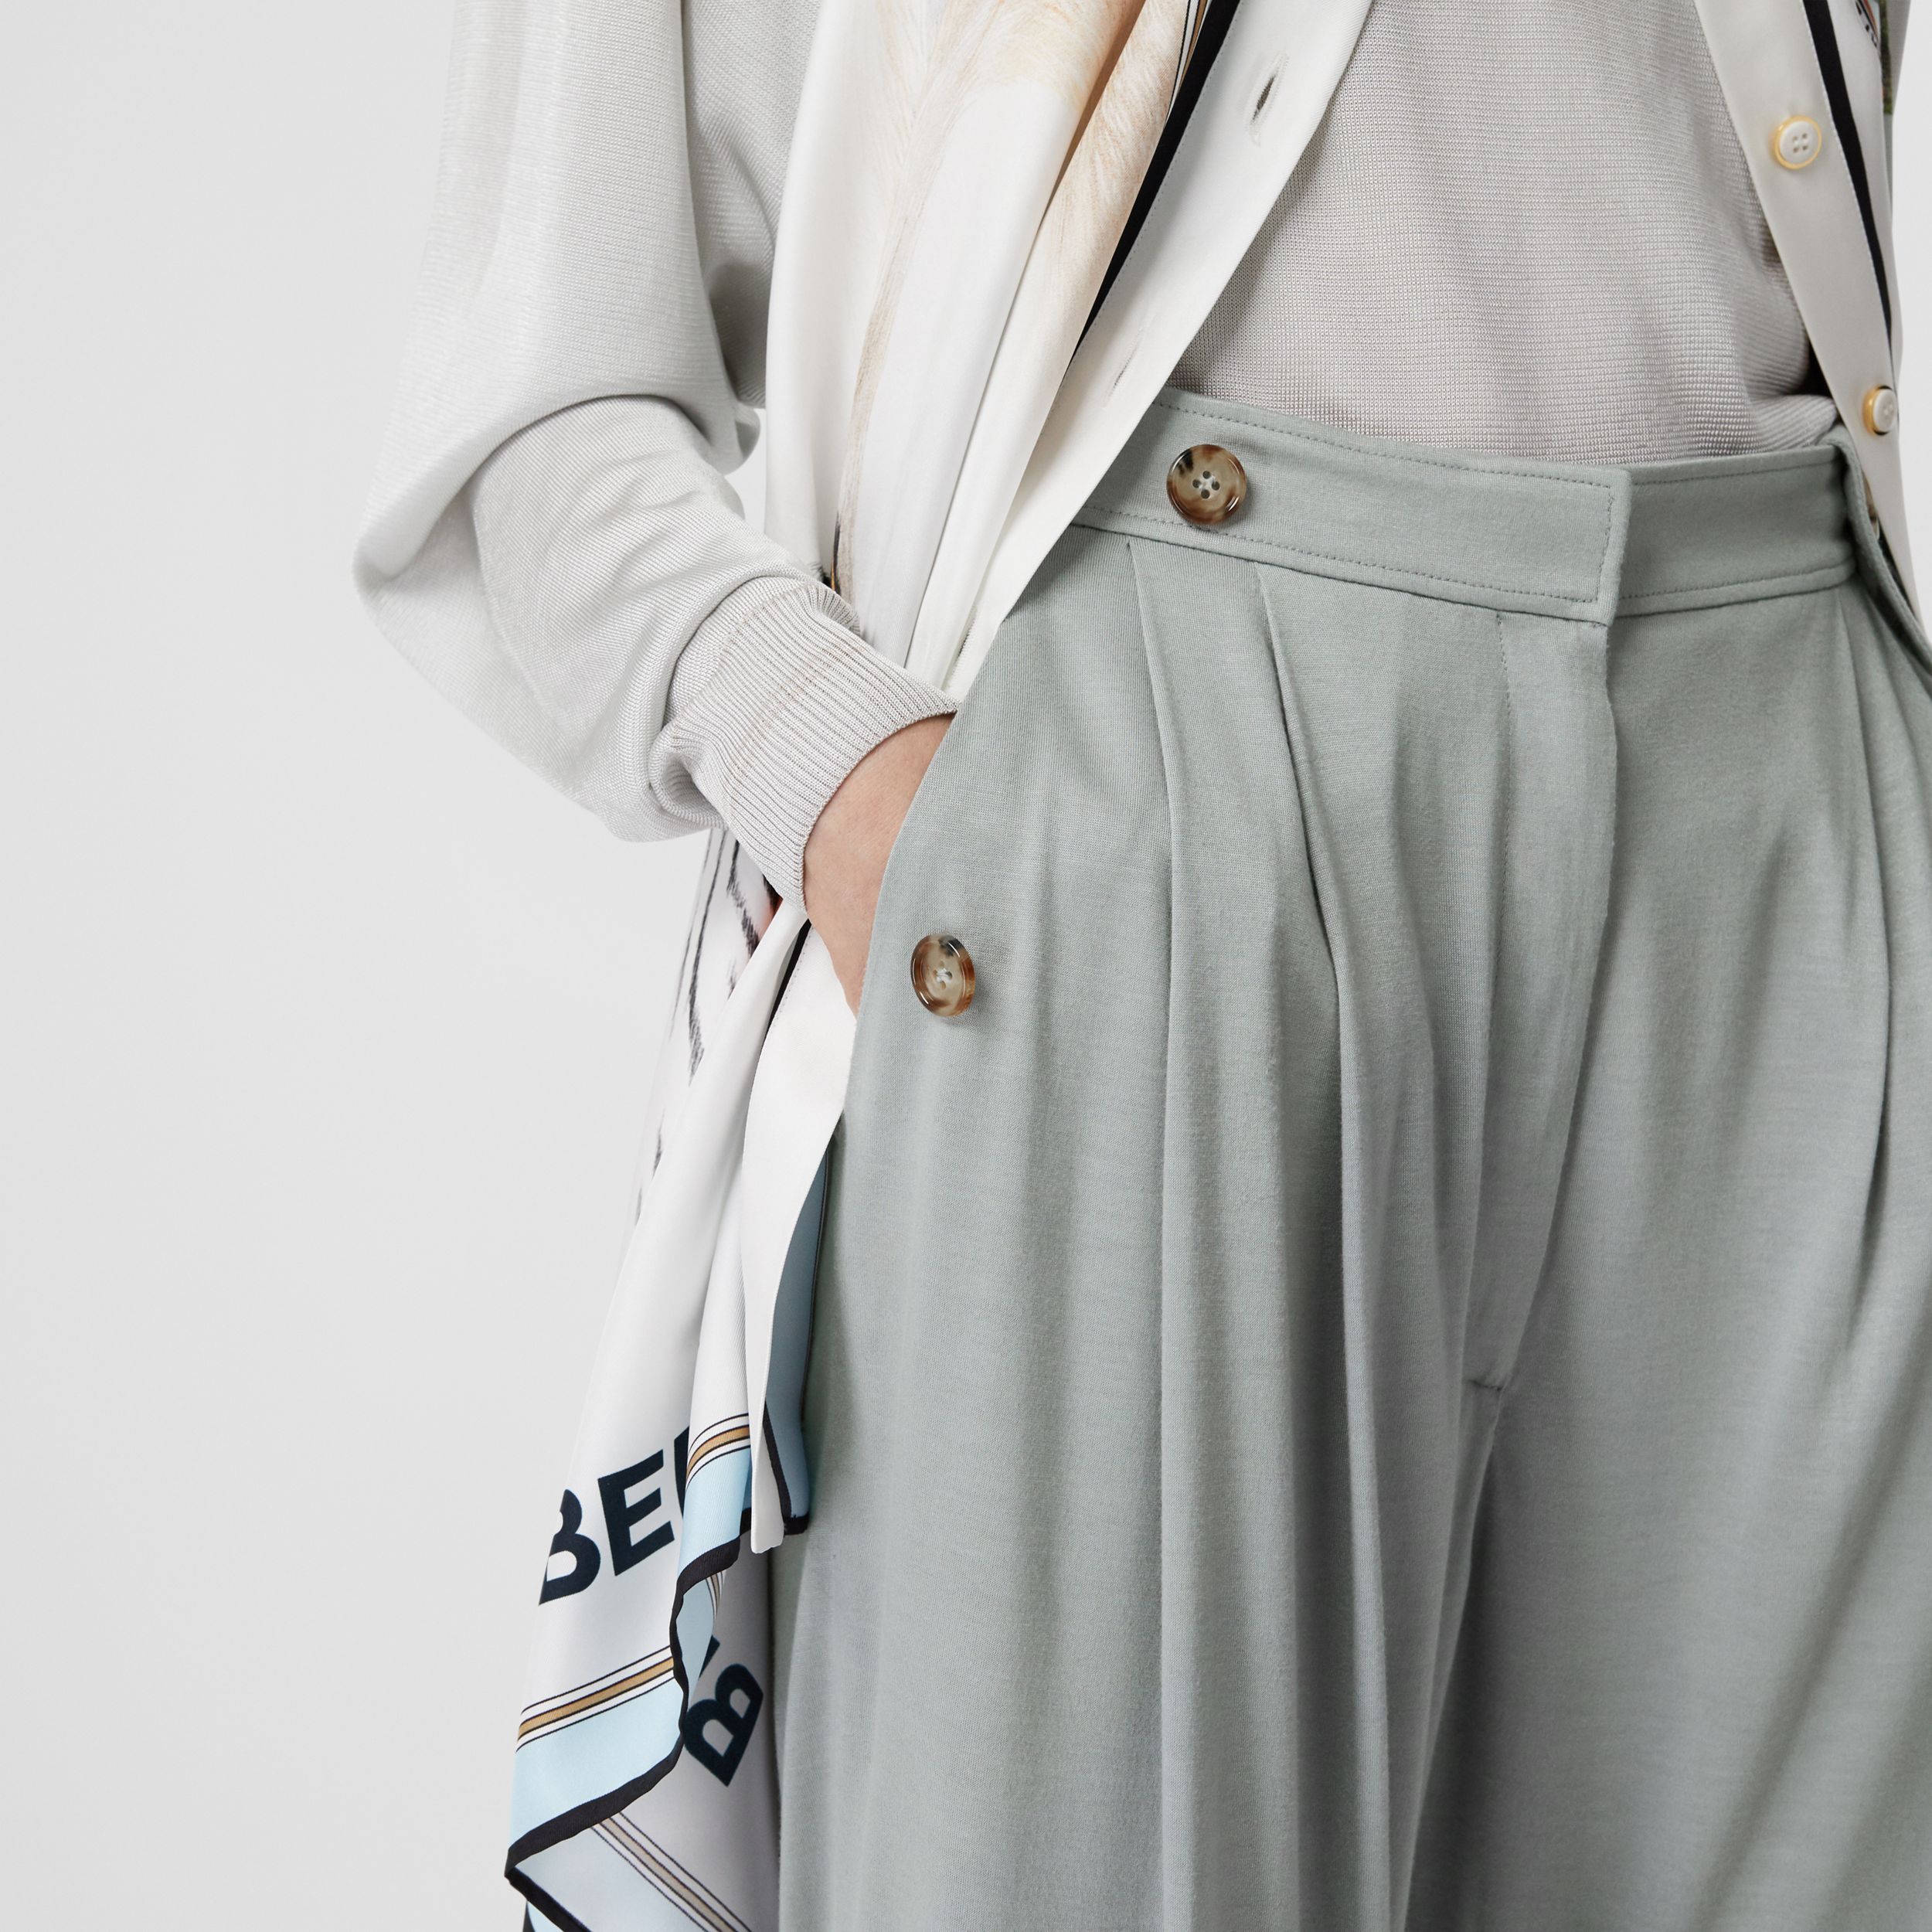 Strap Detail Jersey Tailored Trousers in Heather Melange - Women | Burberry - 2